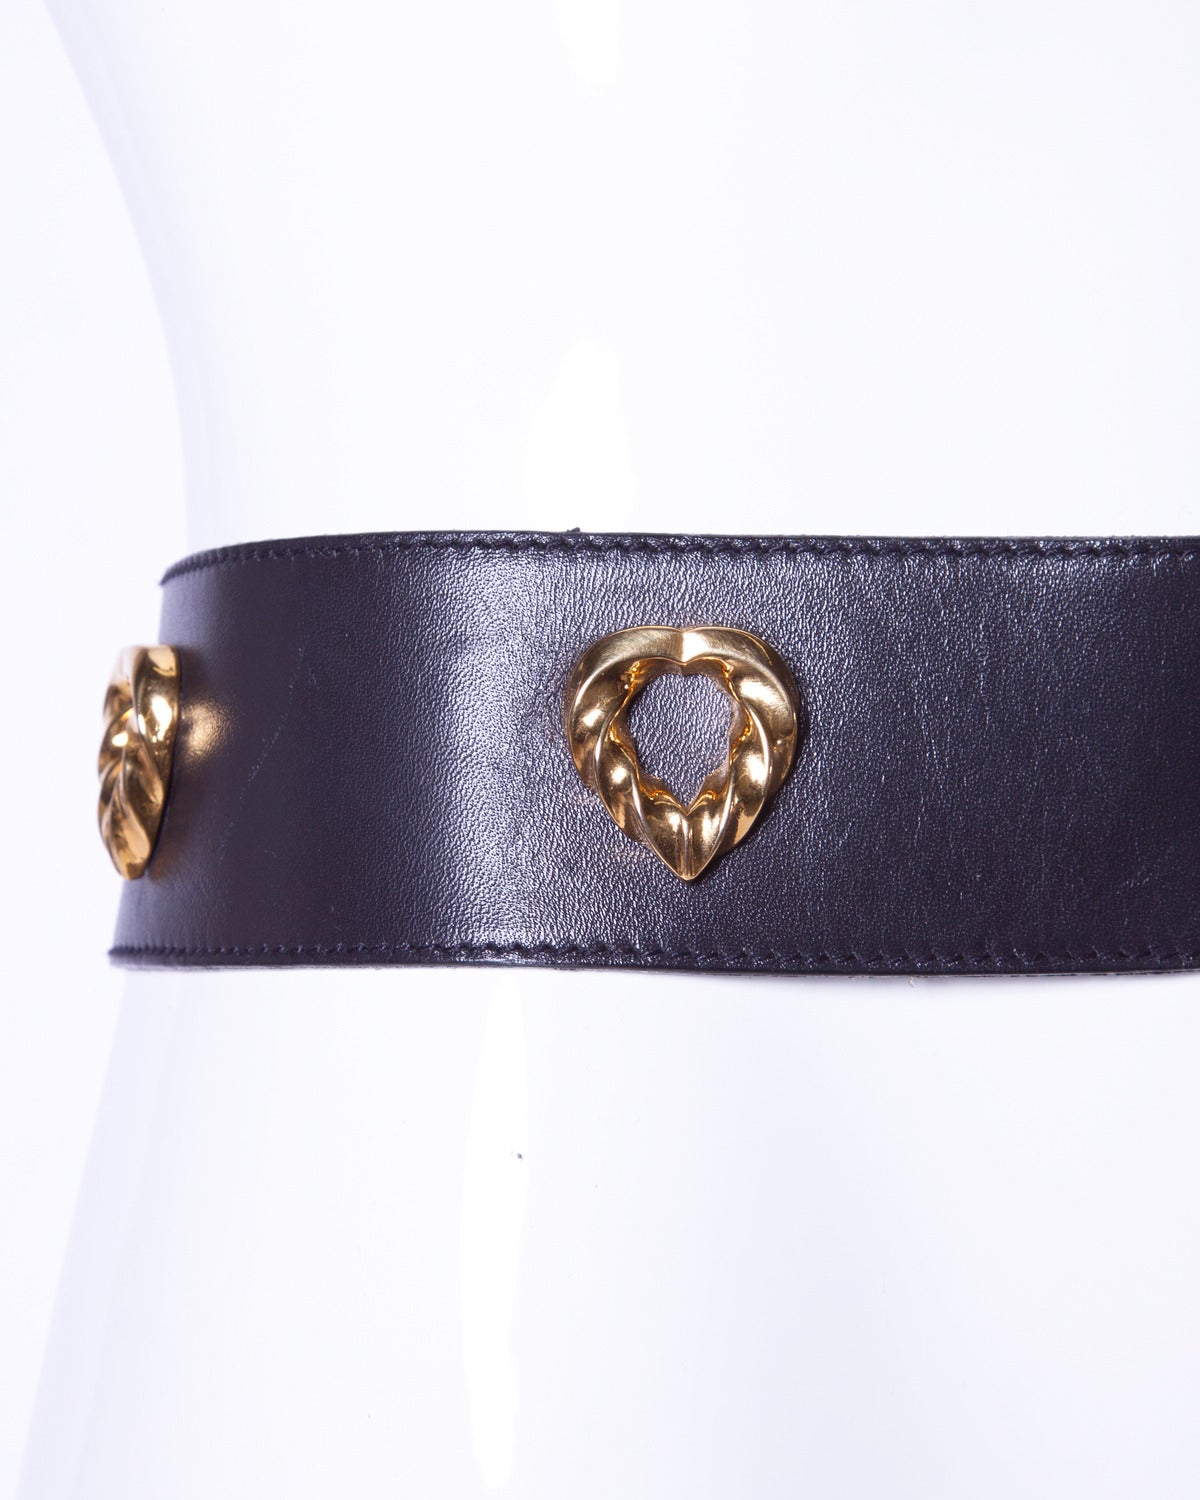 Iconic Escada Vintage 1980s 80s Black Leather Gold Heart Belt In Excellent Condition For Sale In Sparks, NV